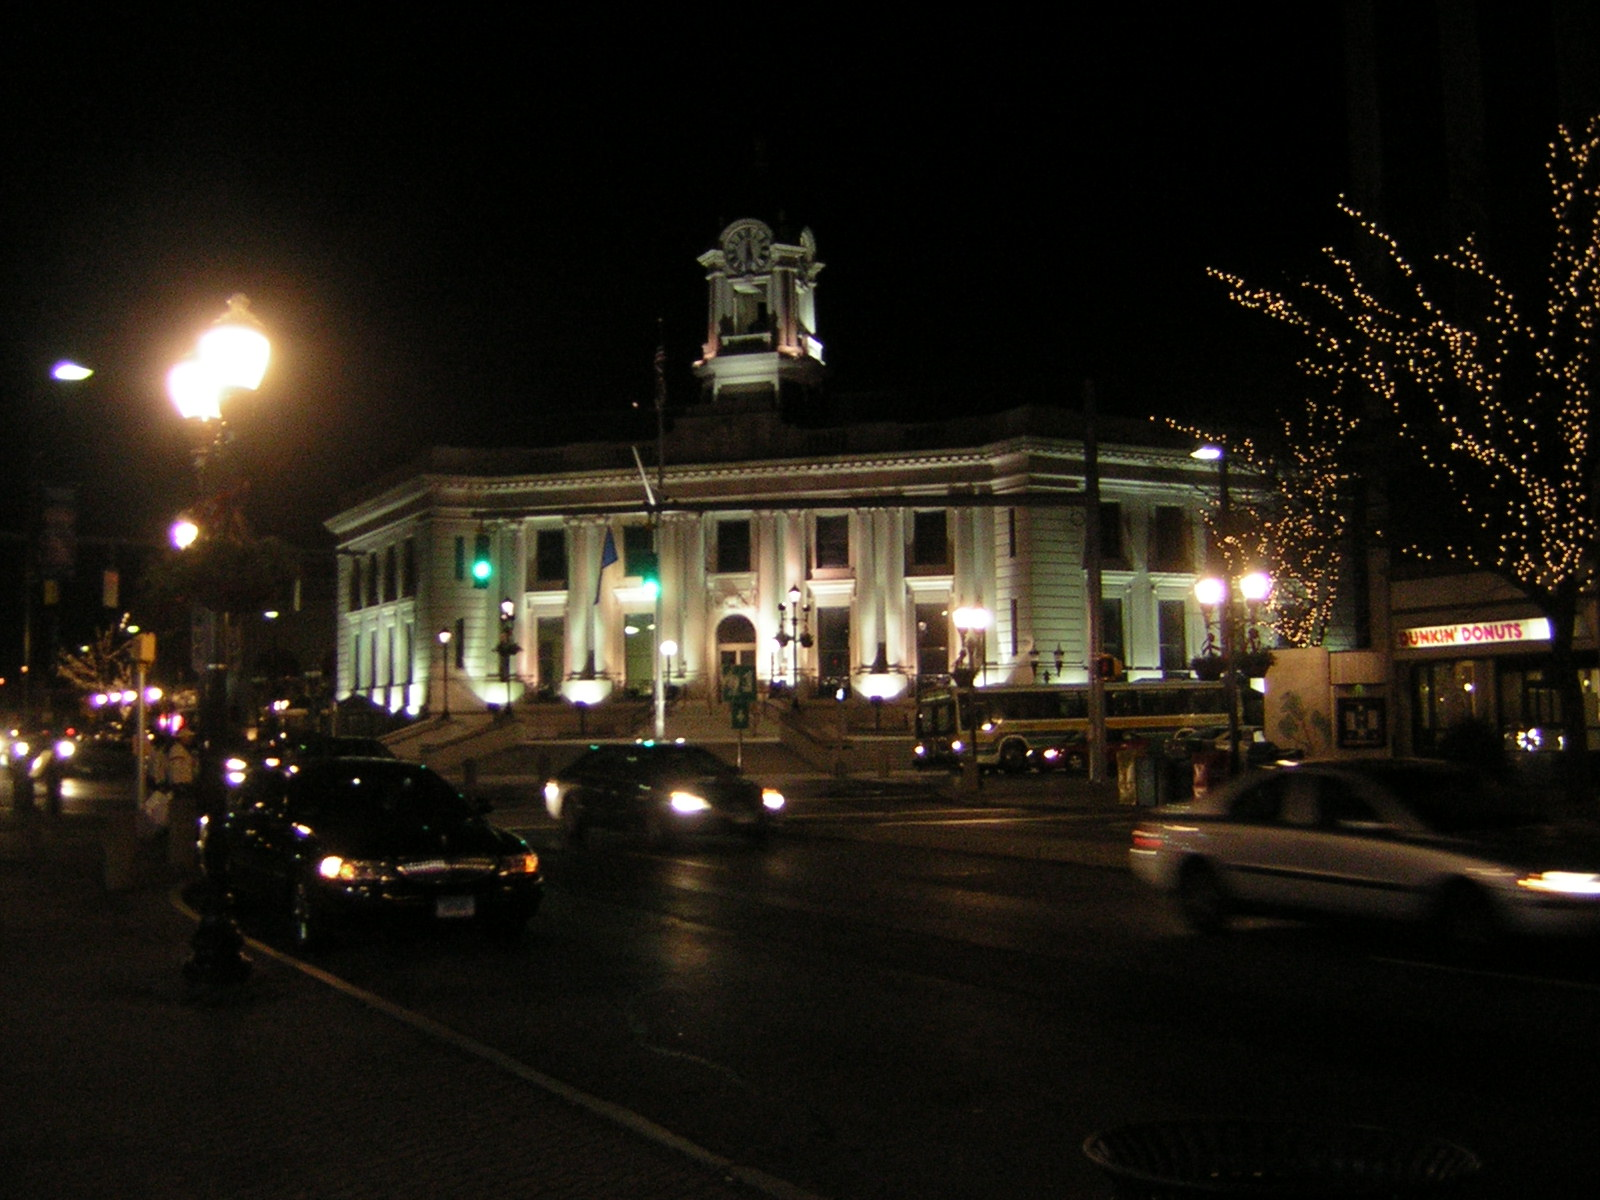 File:Stamford Old Town Hall.jpg - Wikipedia, the free encyclopediabalance of stamford town